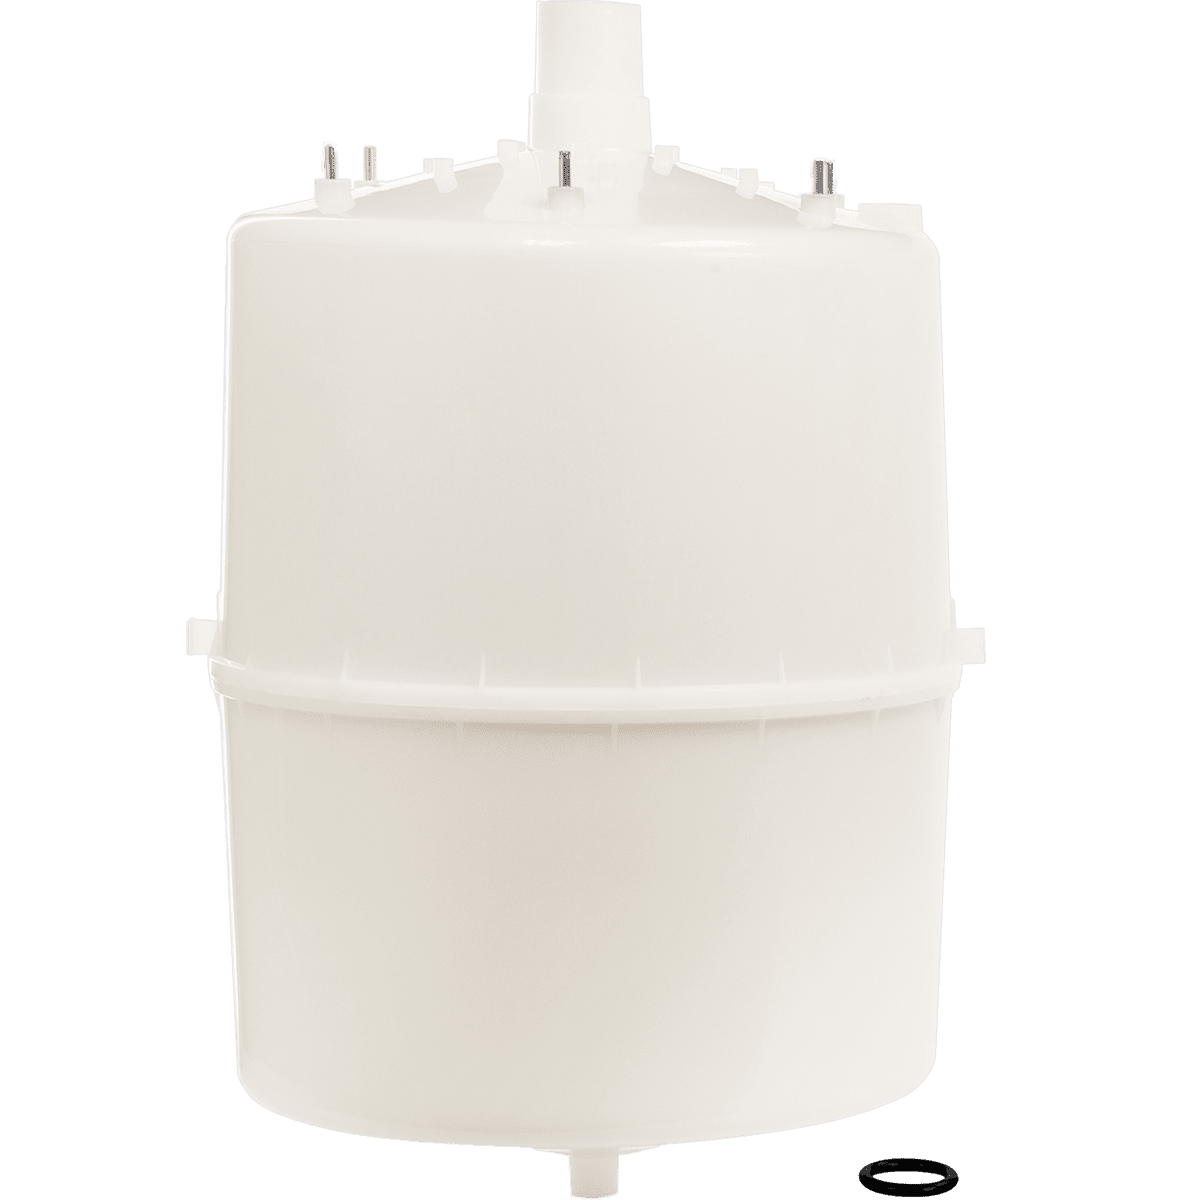 Aprilaire 621aac Steam Humidifier Cylinder (fits Nortec® 621)